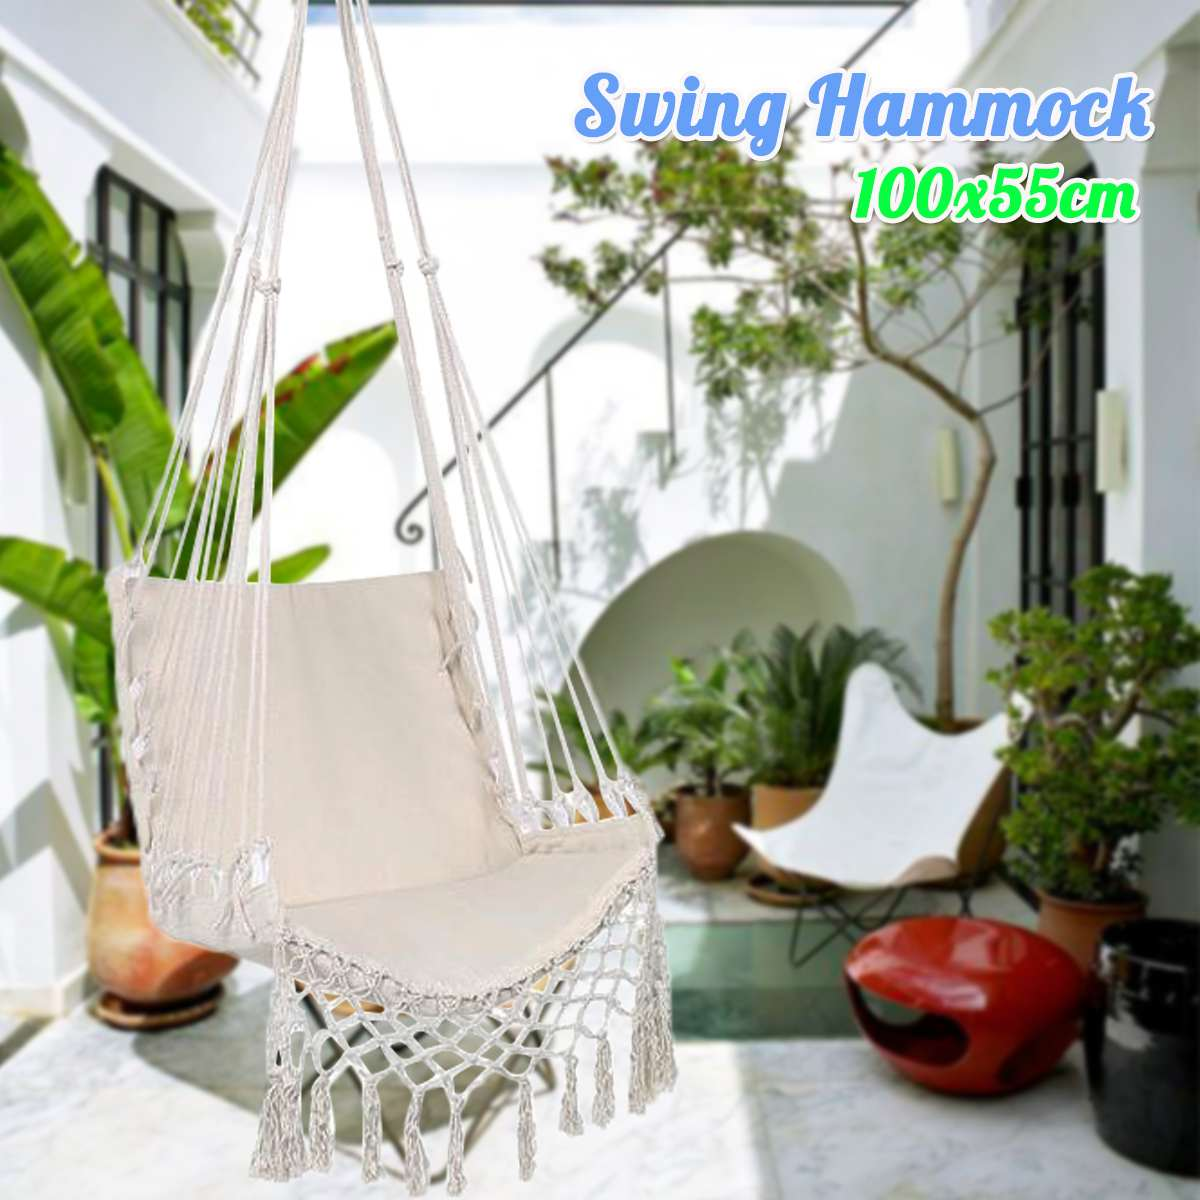 100x55cm Swing Hammock Outdoor Indoor Hanging Chair With Hammock Rope Garden Swing Chair For Children Adult Bedroom Furniture